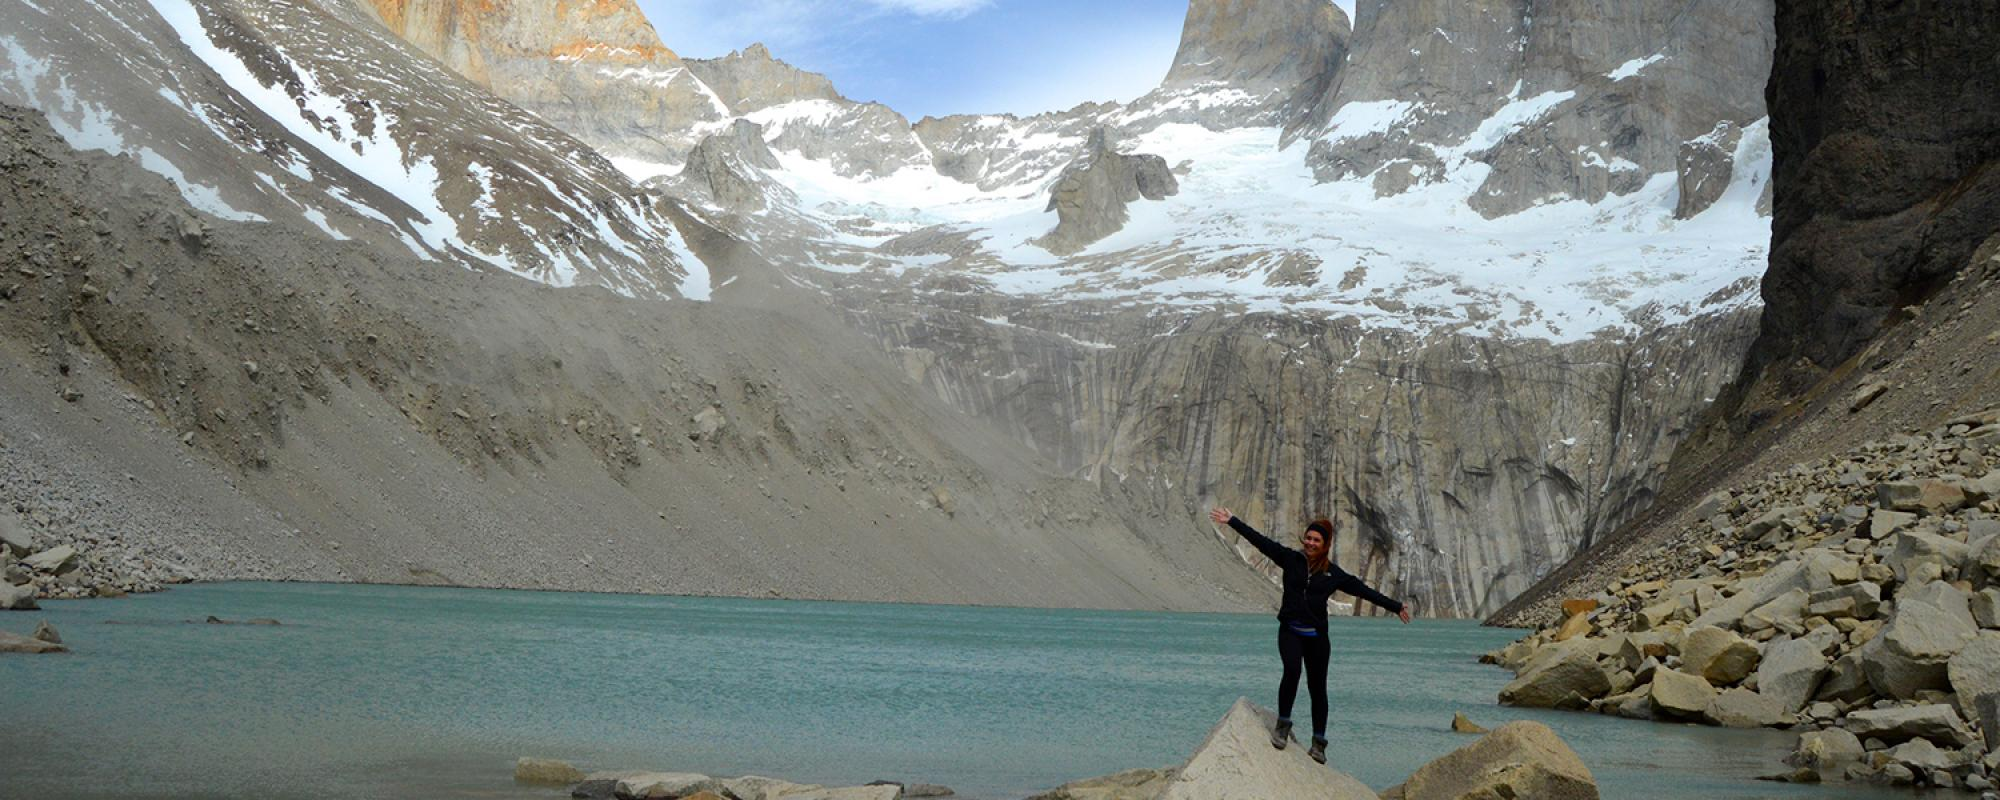 Student at the summit of Torres Del Paine in  Chile